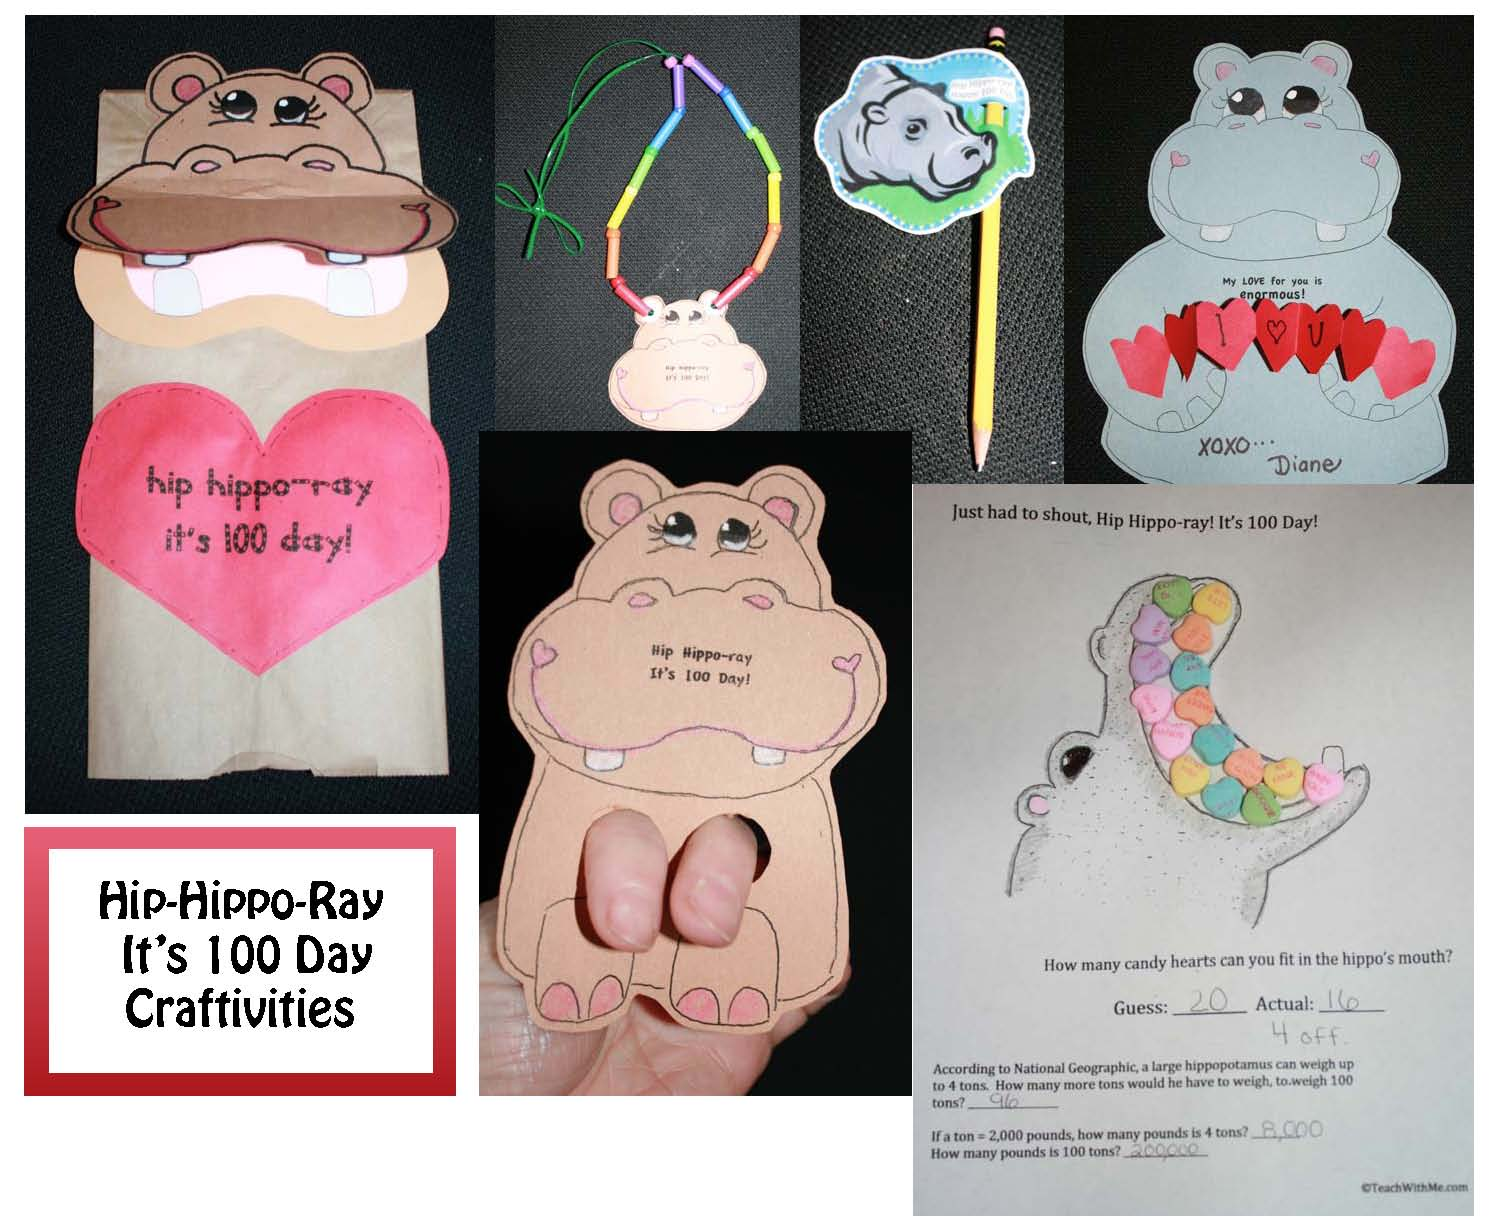 ant activities, ant crafts, ant lesson, 100 day activities, pizza activities, 100 topping pizza, 100 day lessons, ideas for 100 day, 100 day crafts, 100 day centers, hippo activities, caterpillar activities, the very hungry caterpillar activities, ants in your pants craft, train activities, 100 day games,